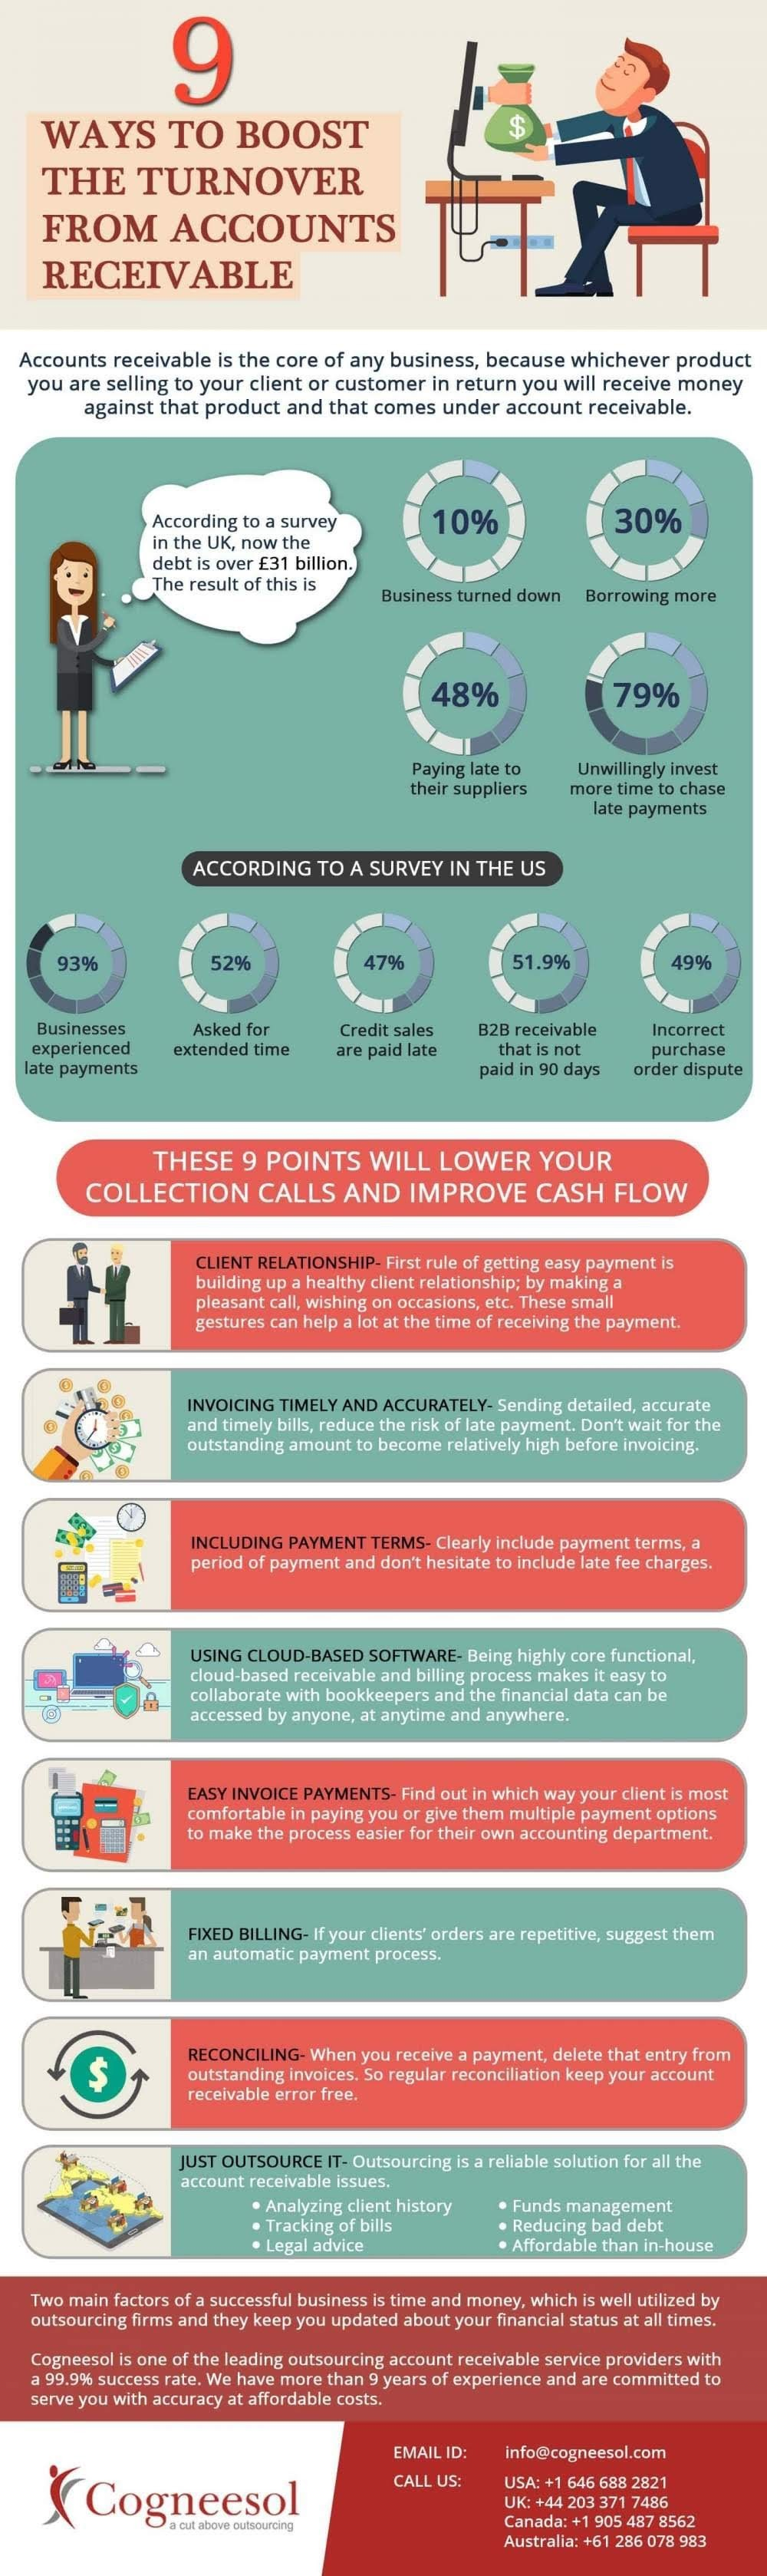 9 Ways to Boost The Turnover from Account Receivable #infographic